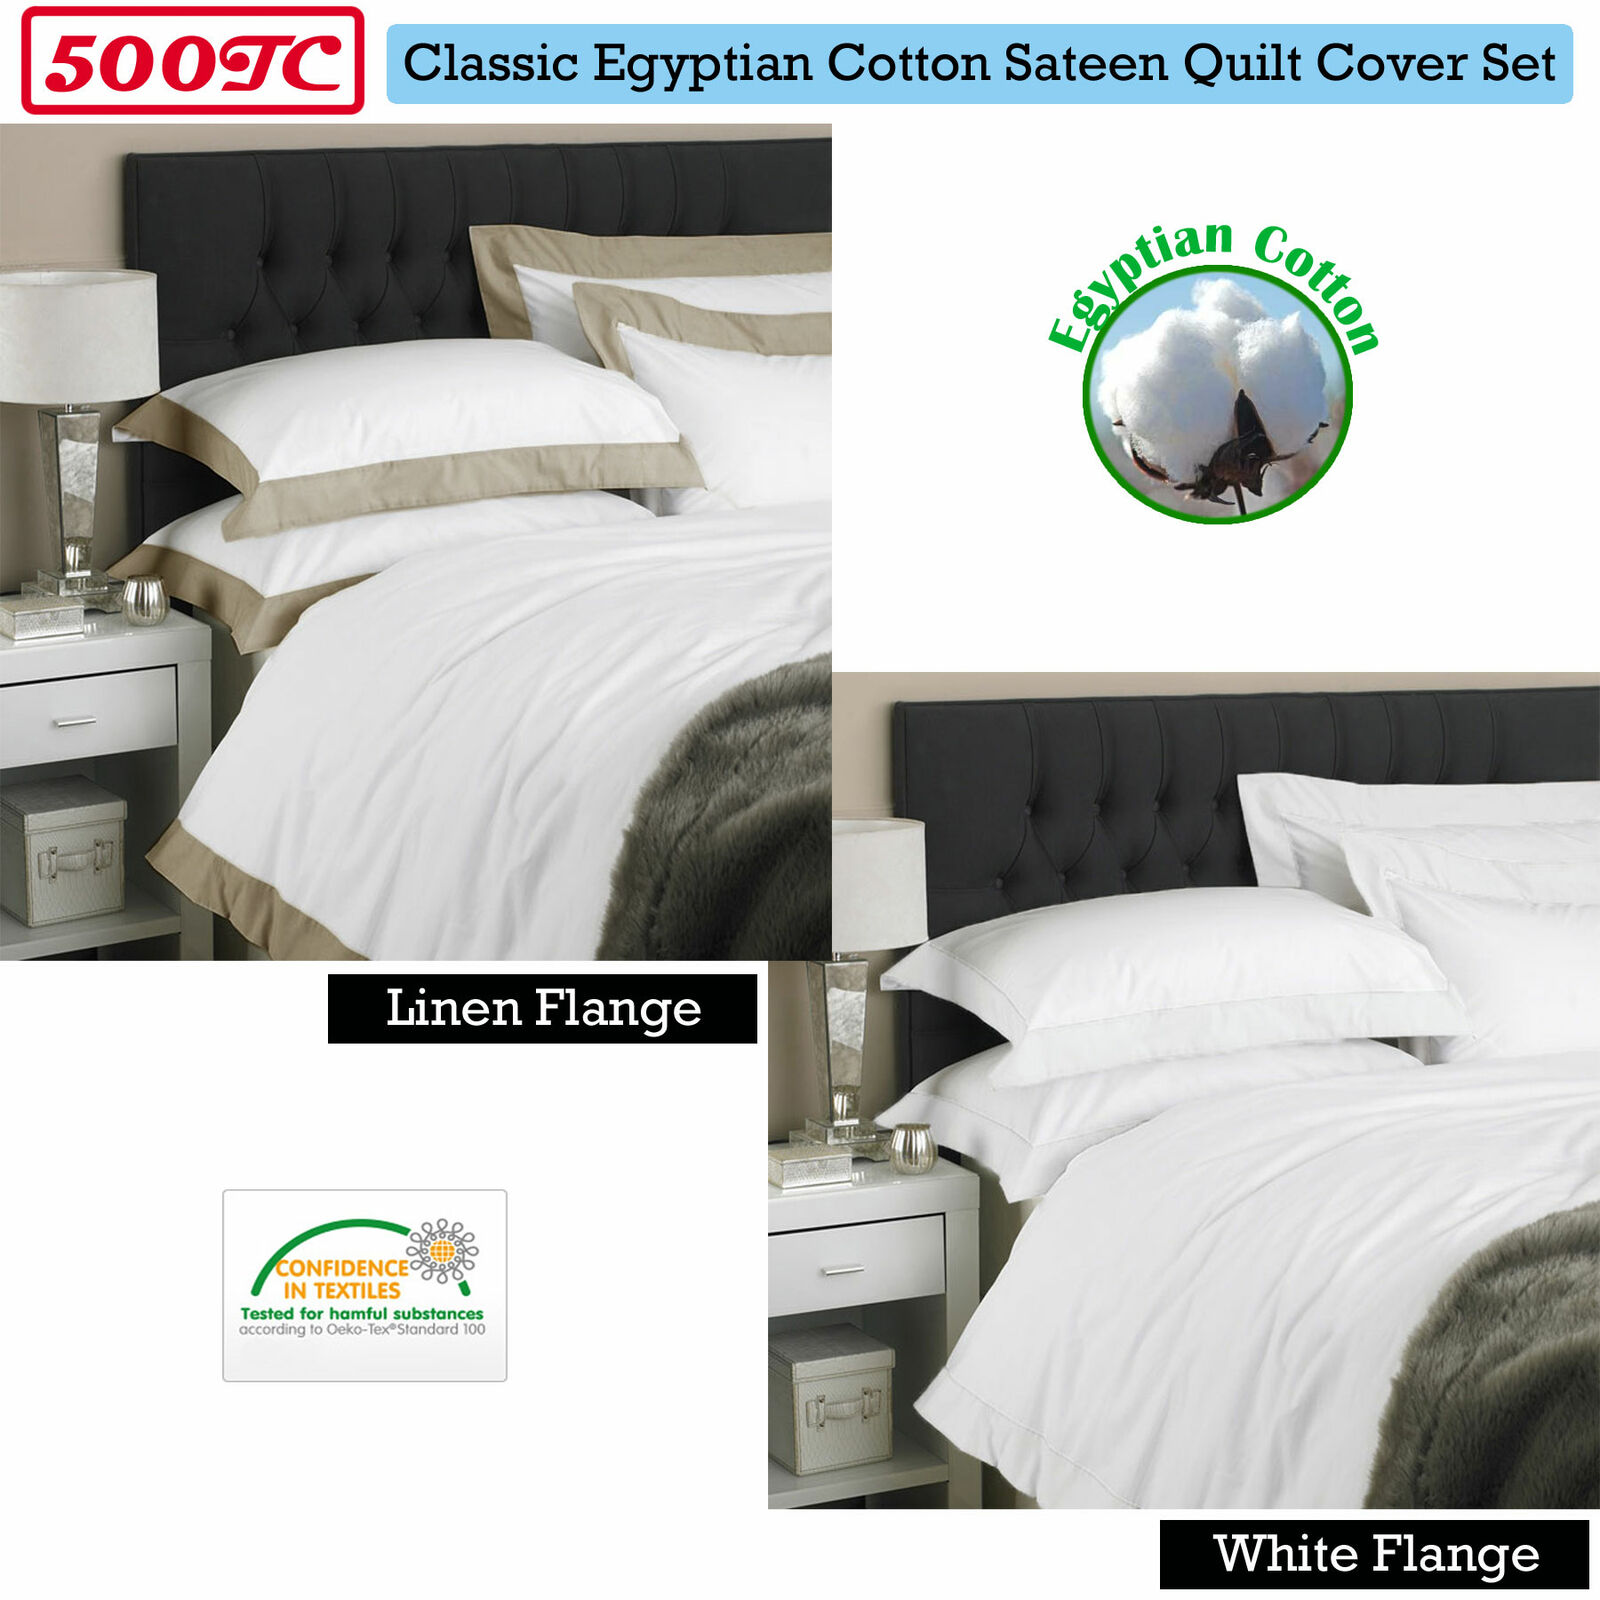 Quality 500TC Egyptian Cotton TailGoldt Quilt Cover Set QUEEN KING Super King